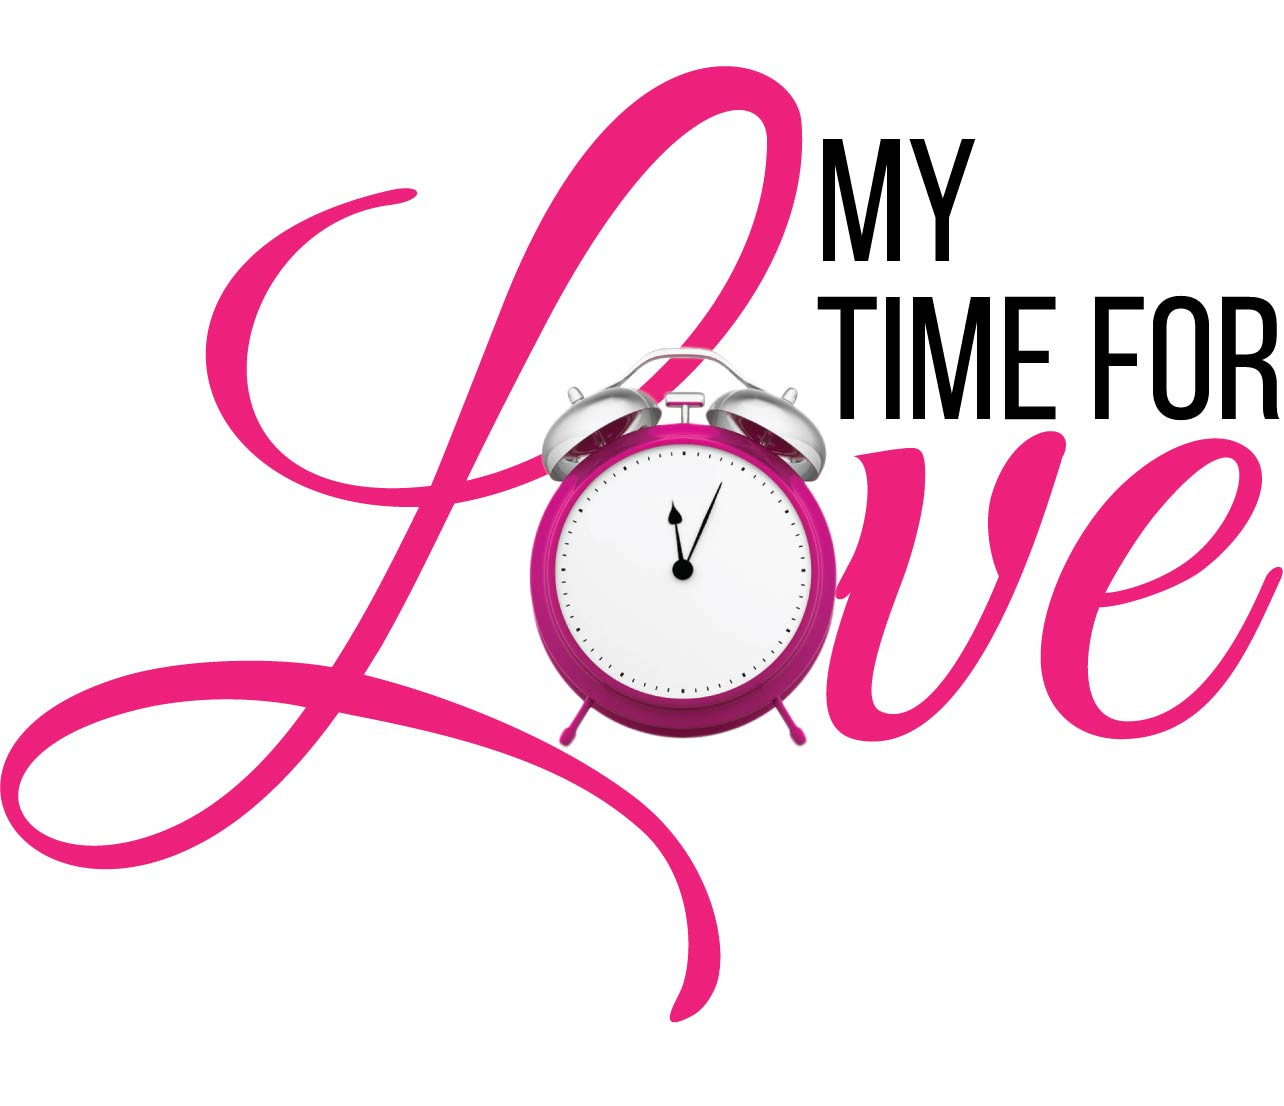 My Time for Love - D - It's Never Too Late for Love